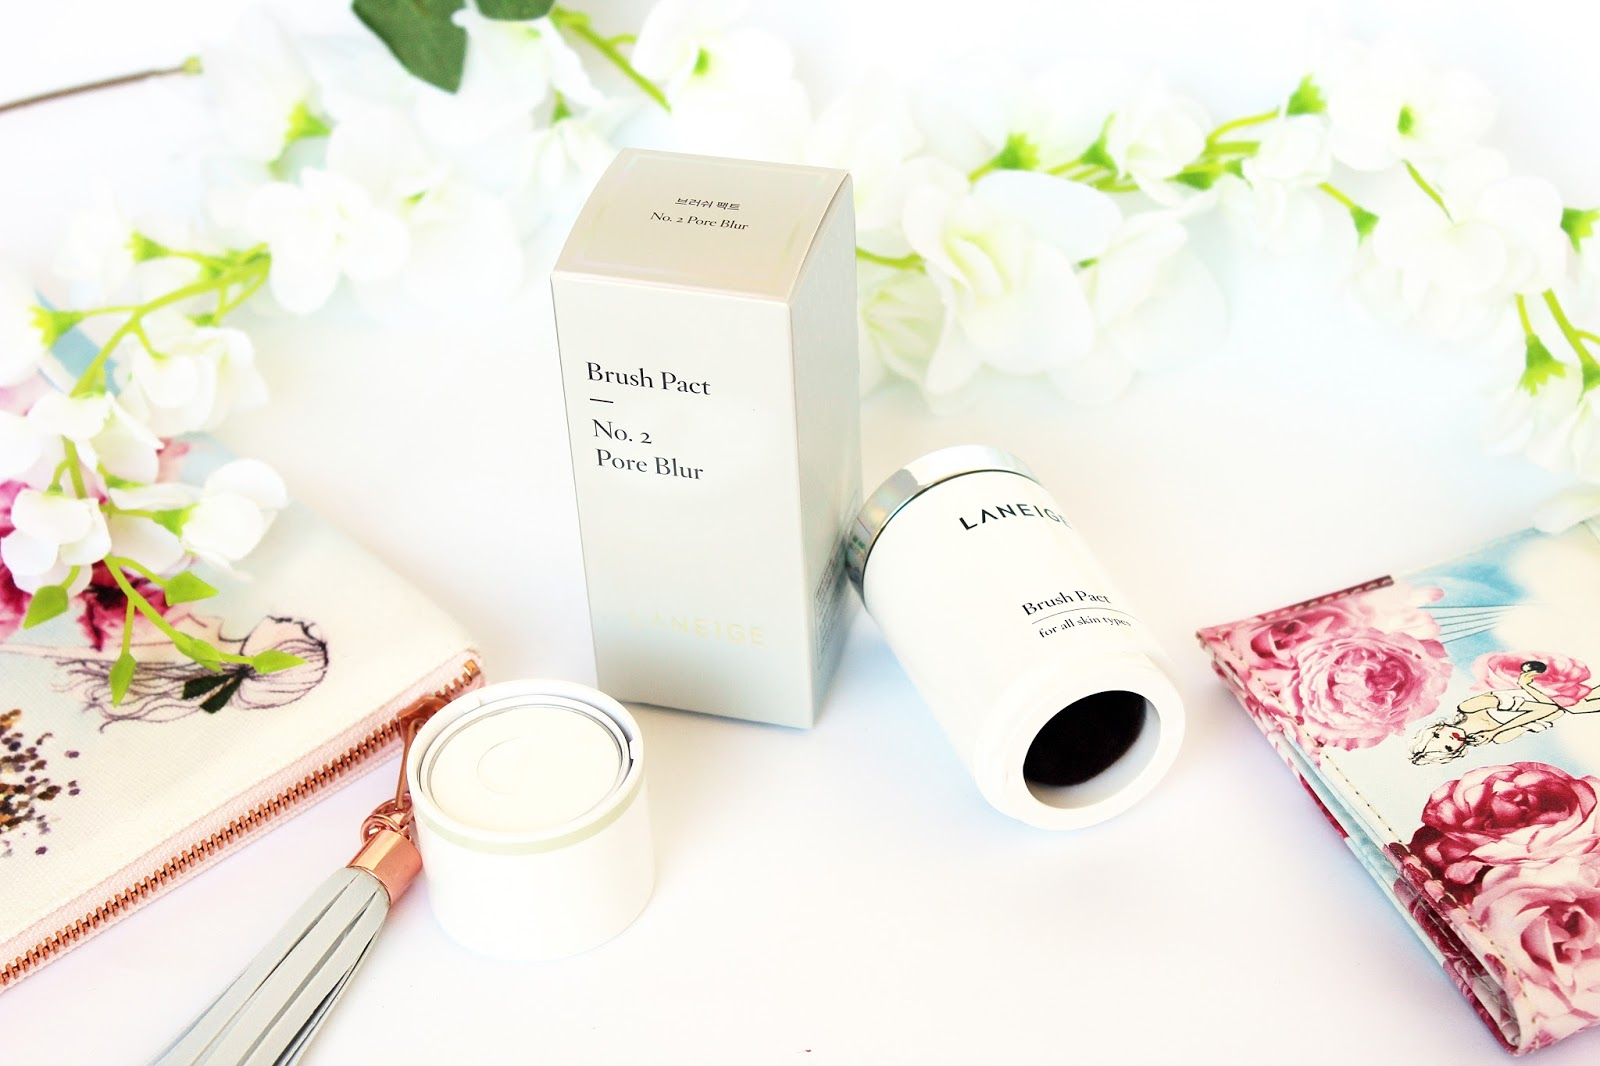 Laneige, Brush Pact no.2 Pore Blur